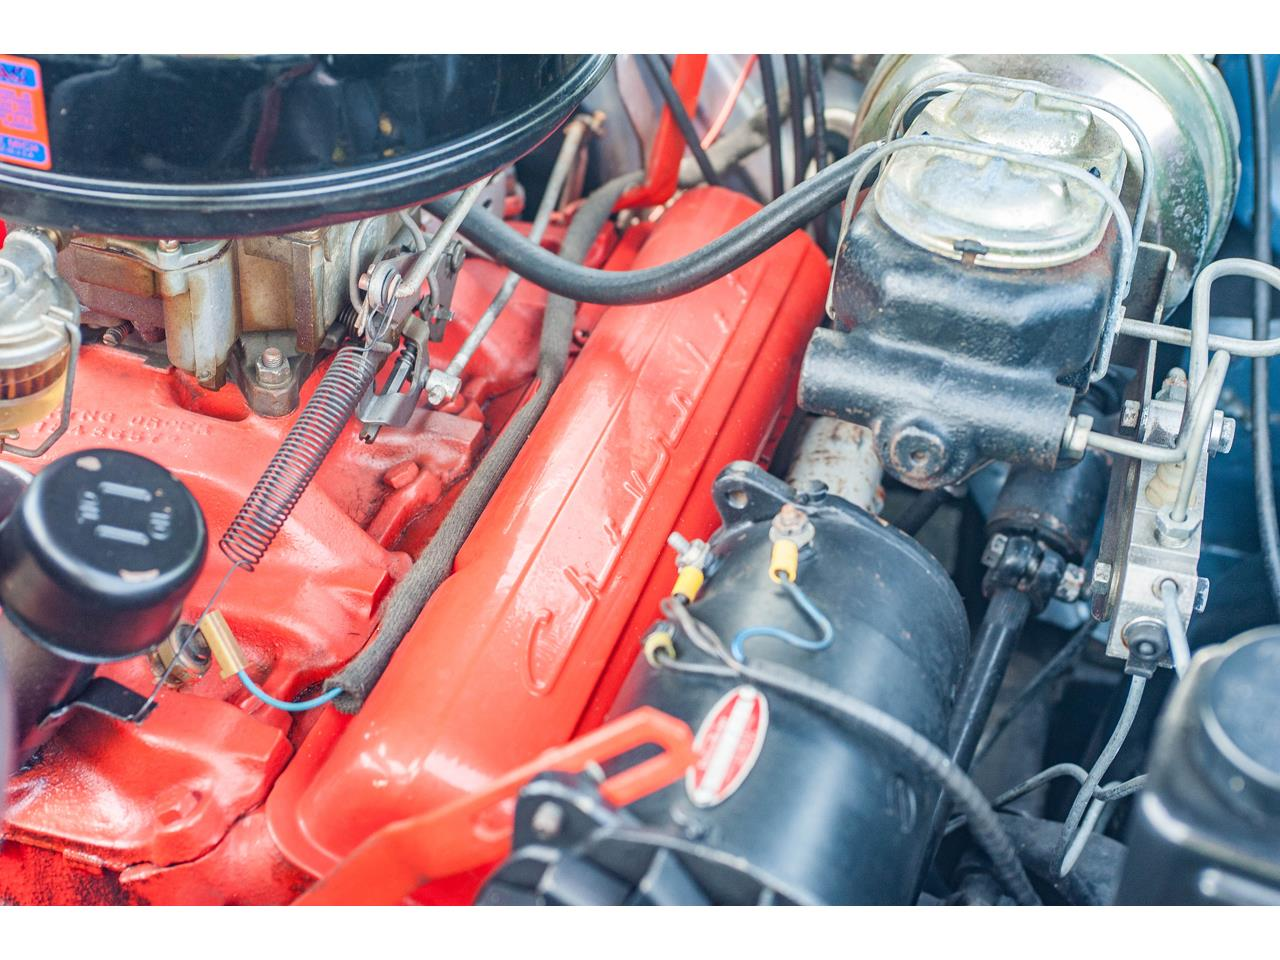 Large Picture of Classic 1958 Impala located in O'Fallon Illinois - $62,000.00 Offered by Gateway Classic Cars - St. Louis - QB9Q